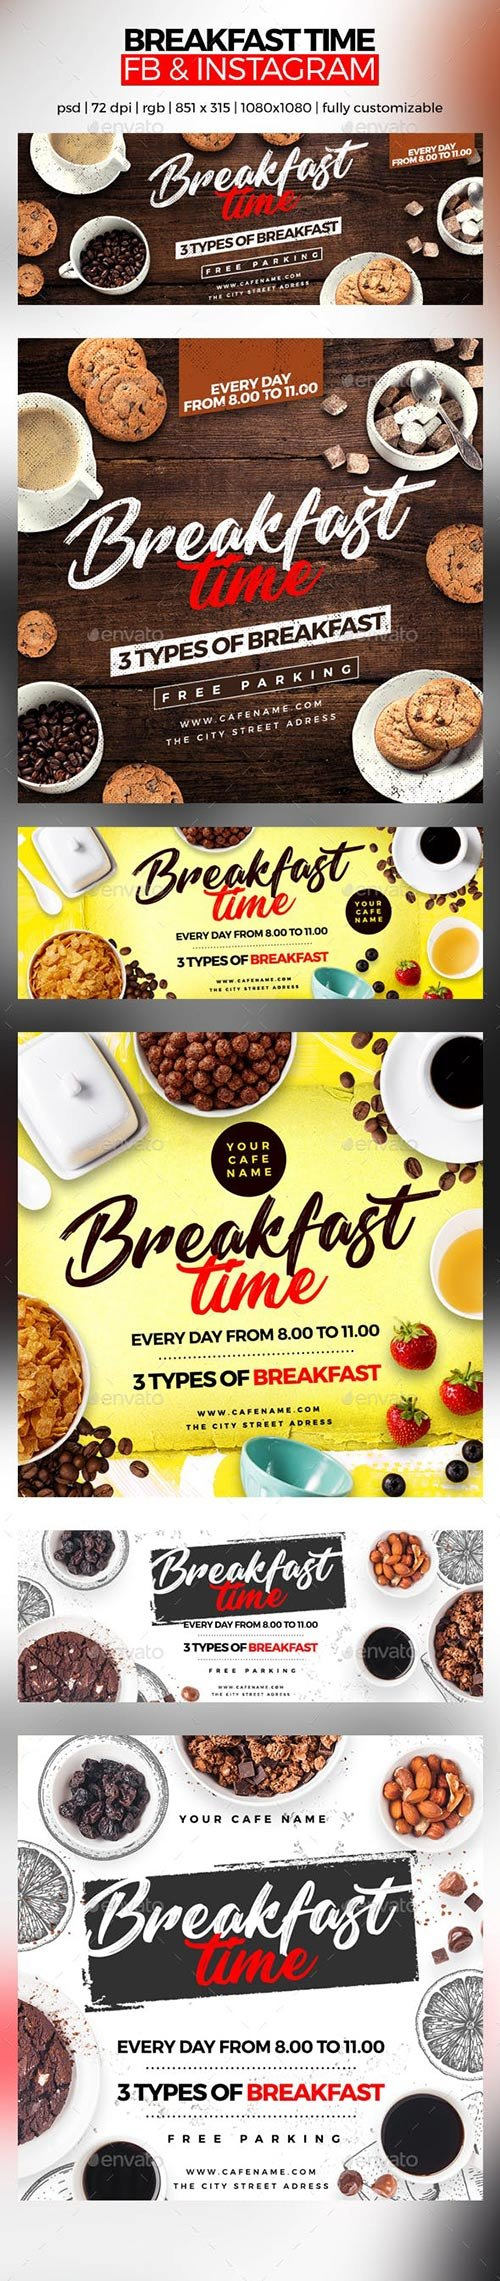 GraphicRiver - Breakfast Time Facebook Cover and Instagram 22672687